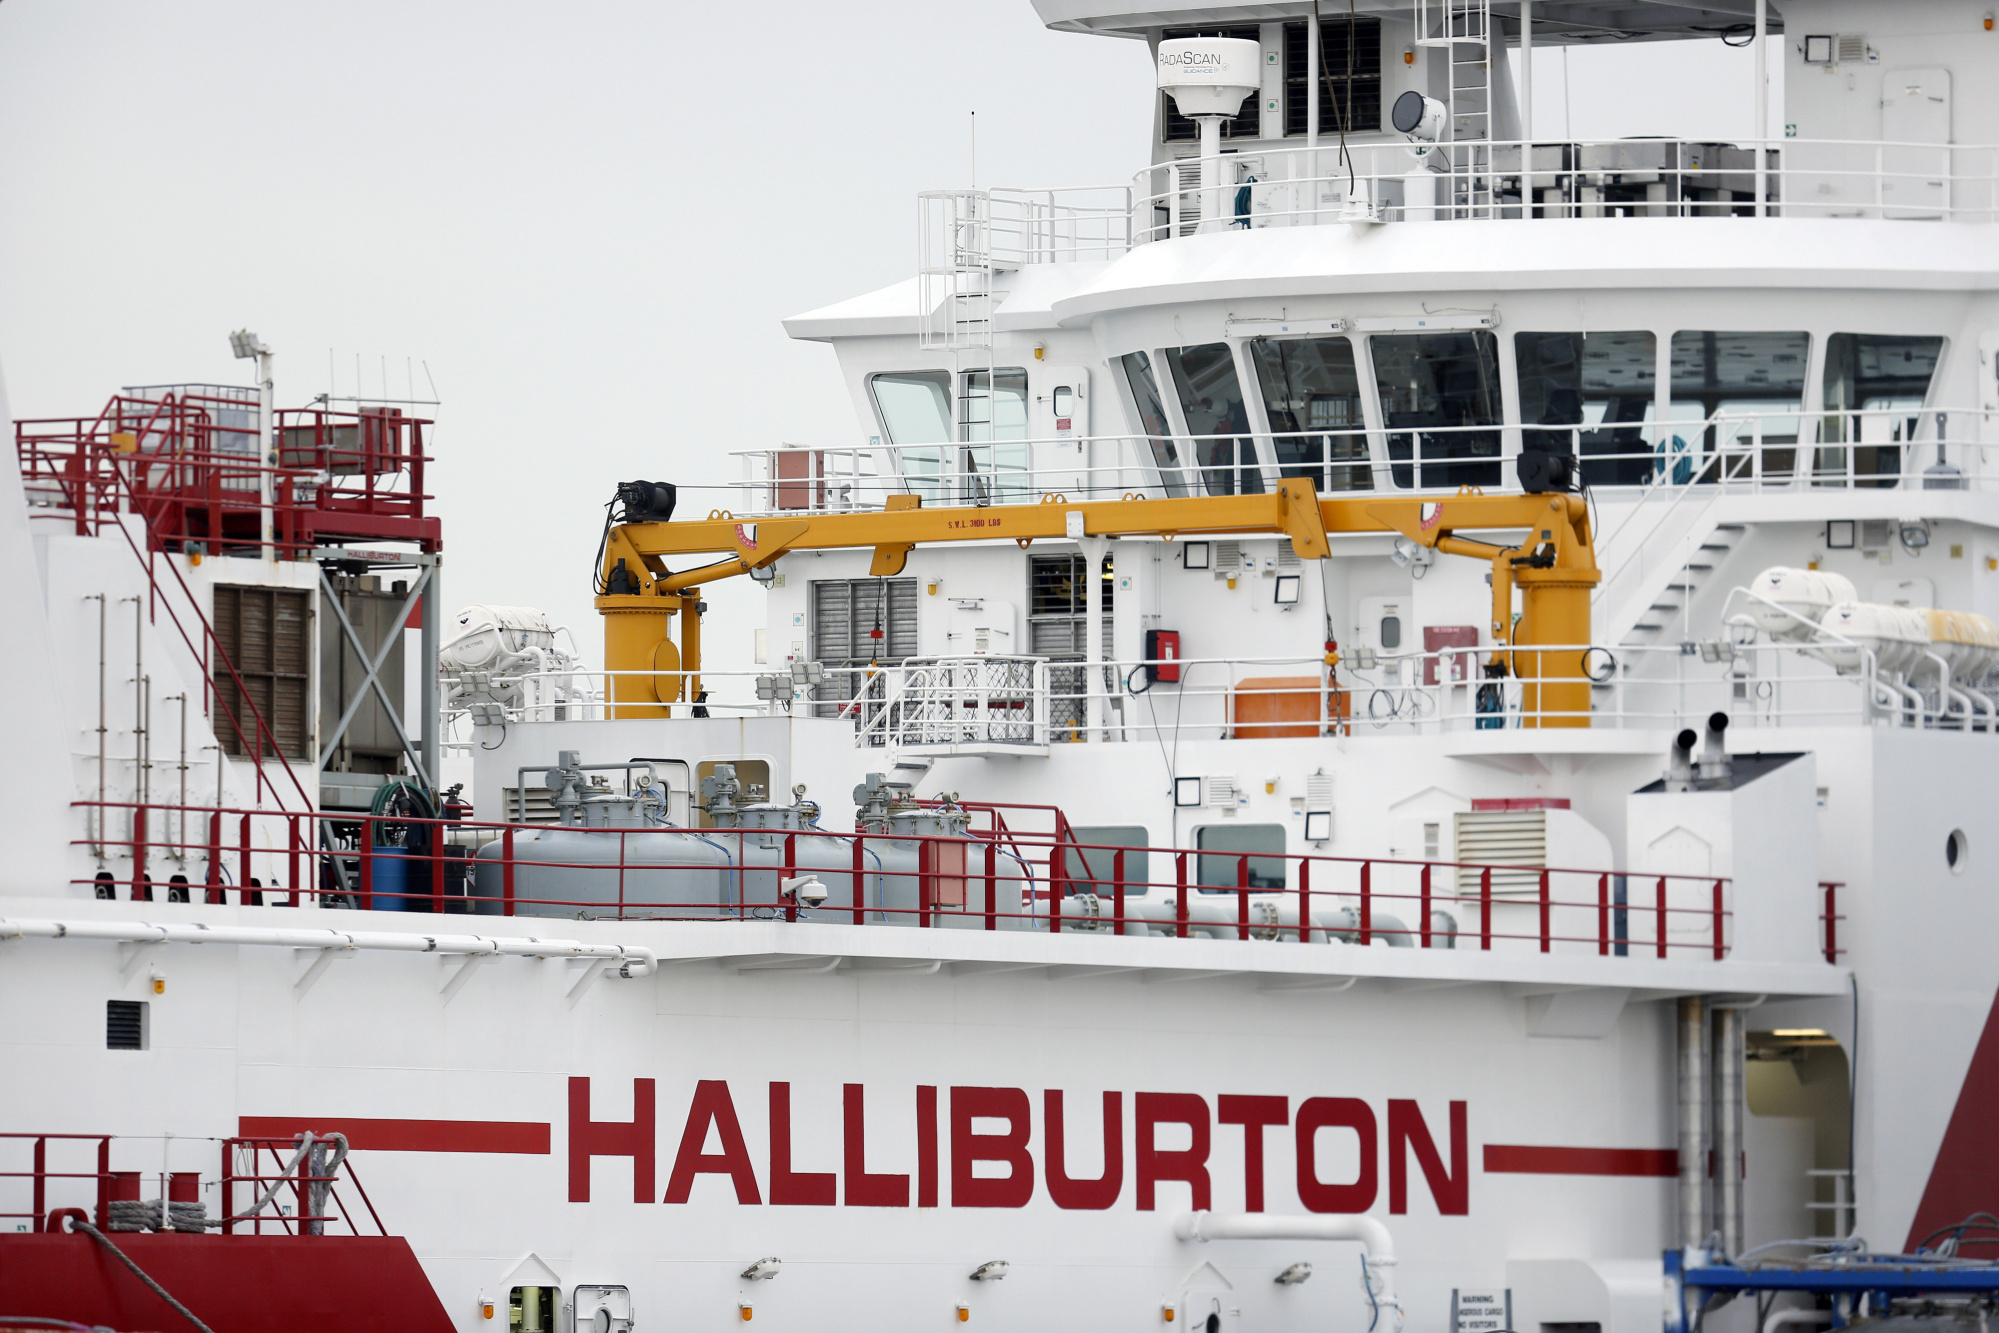 A Halliburton Co. petroleum industry vessel sits docked in Port Fourchon, Louisiana, U.S., on Thursday, Feb. 8, 2018. U.S. oil explorers added rigs this week as crude prices recovered from their worst weekly decline in two years. Photographer: Luke Sharrett/Bloomberg